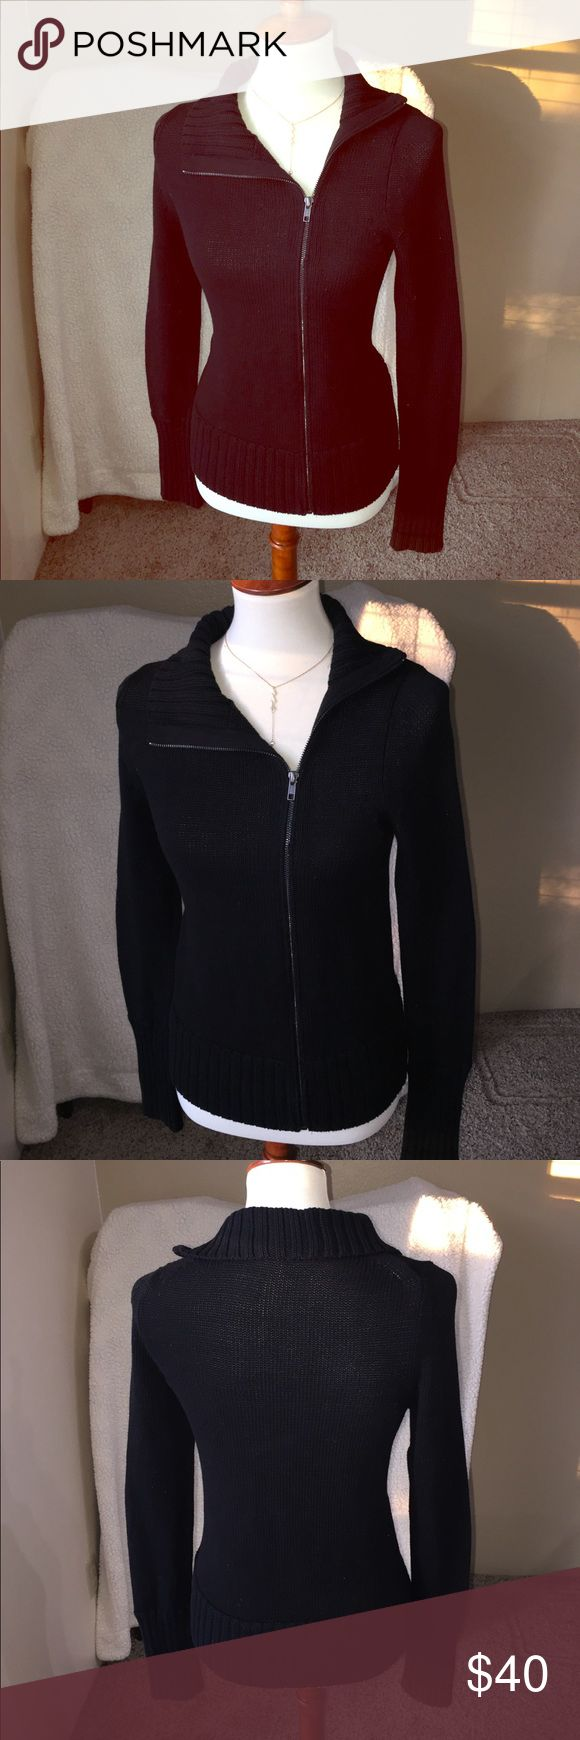 VS black moto sweater Victoria's Secret moto sweater has an angled zipper like you would expect in any moto jacket. Comfortable knit sweater material, this piece has a flattering fit, feminine outline, and long sleeves. Item never actually worn, but their items do not come with tags. Open to offers and questions. Victoria's Secret Sweaters